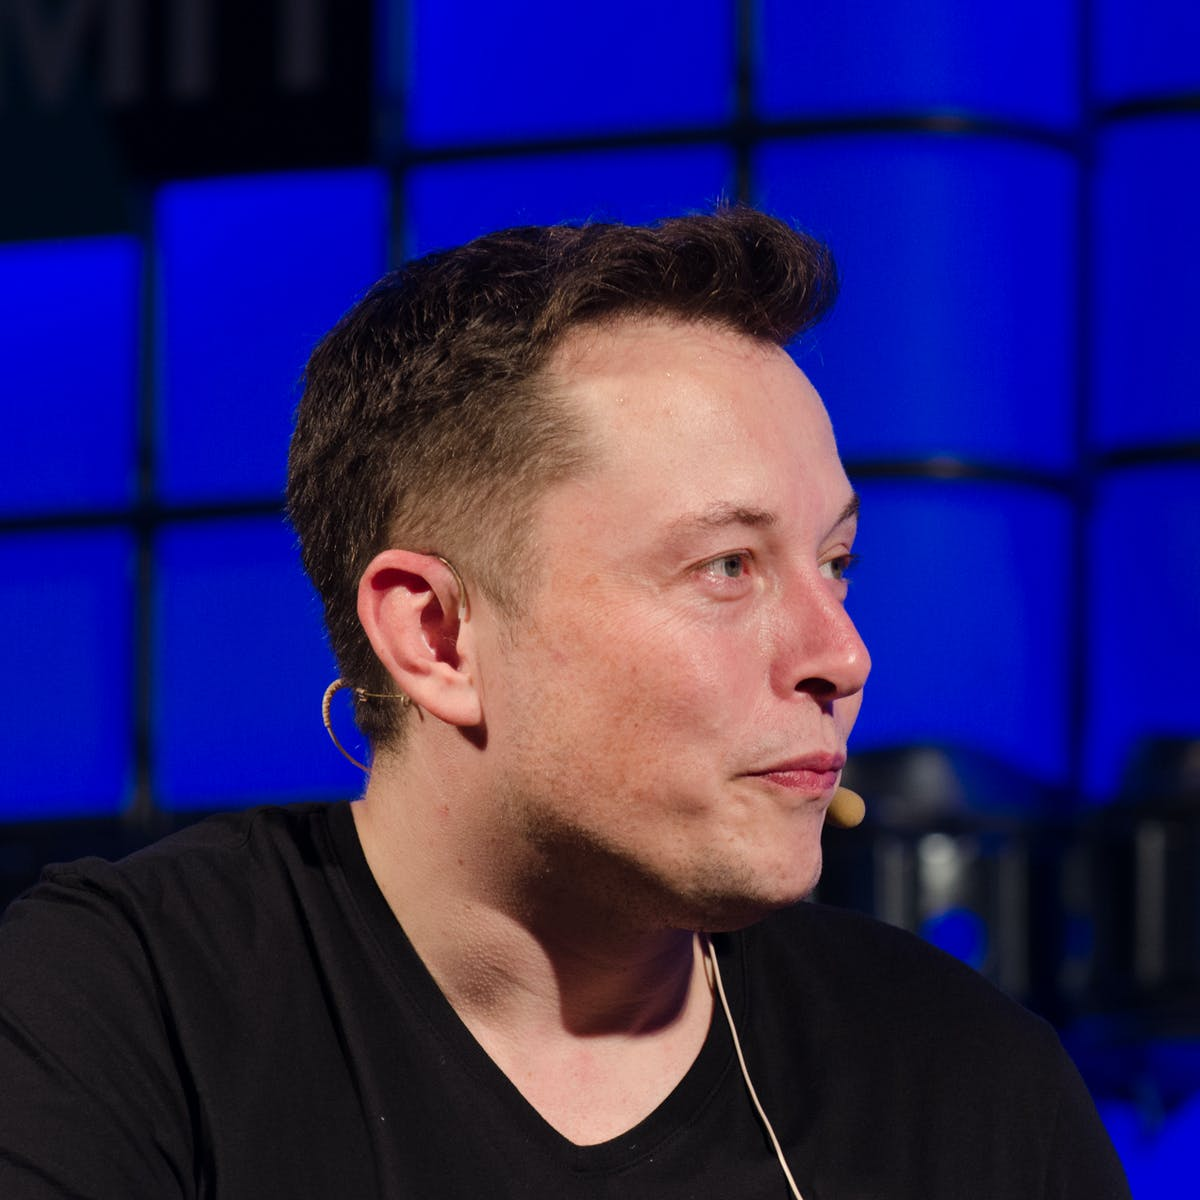 Tesla: Elon Musk Reveals When Electric Cars May Reach Their Tipping Point